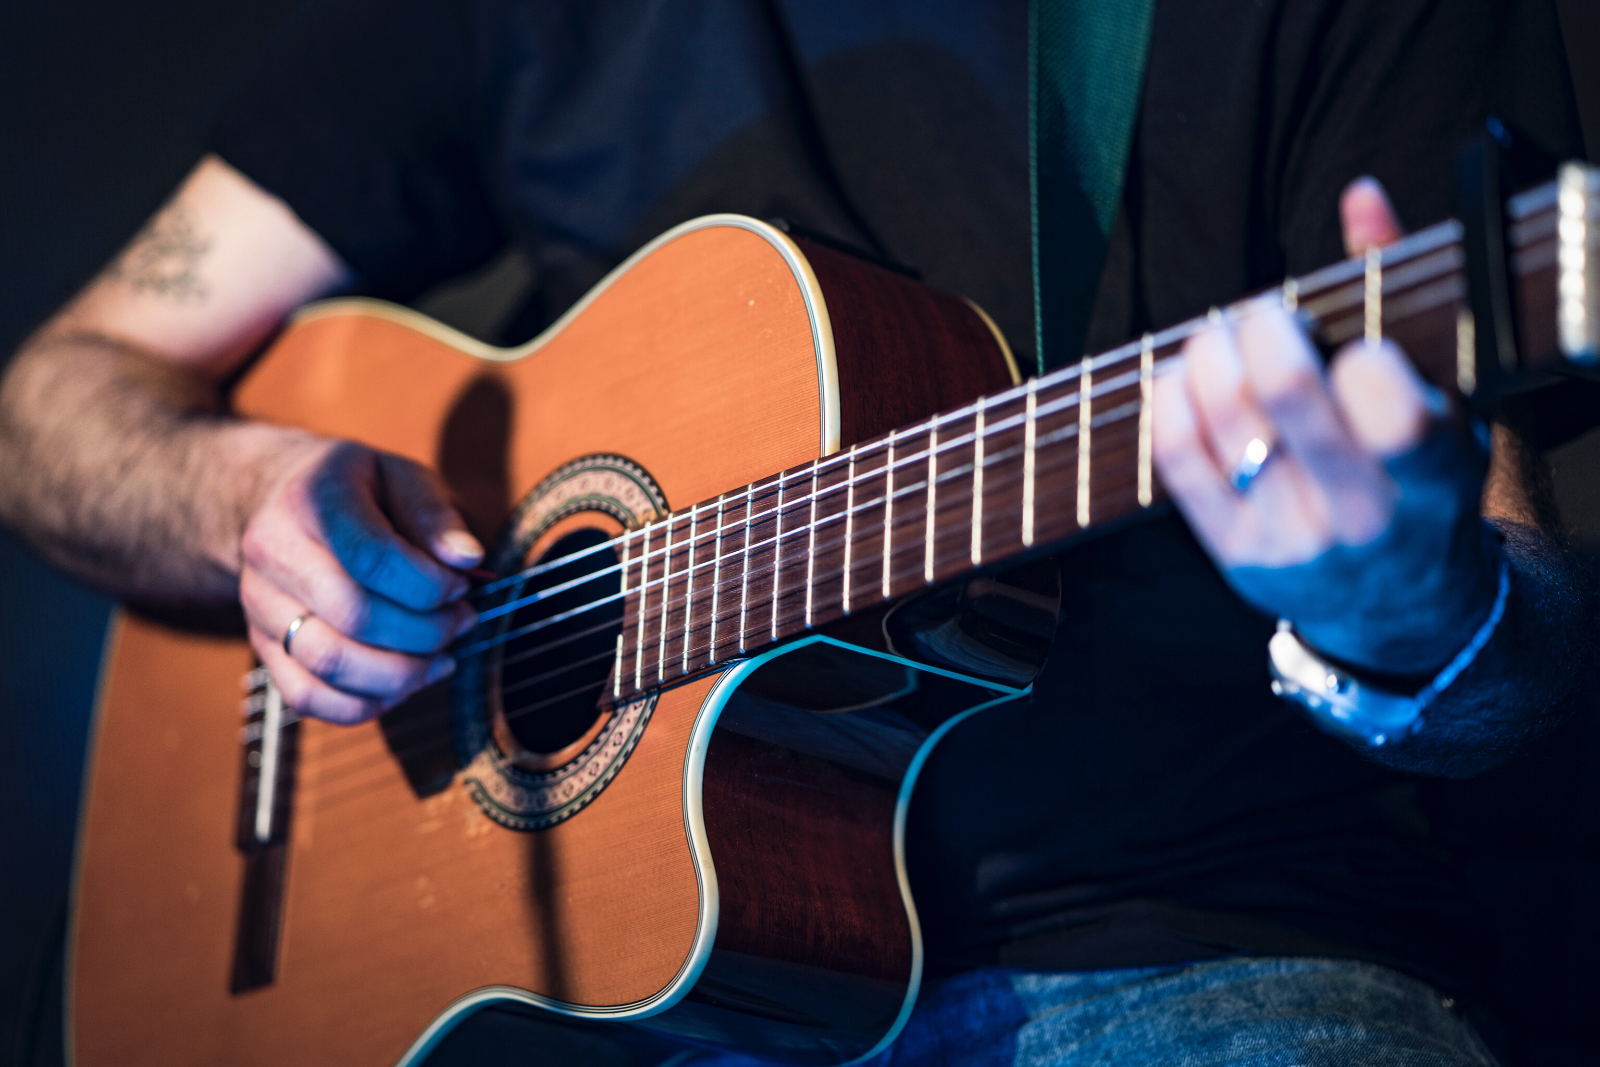 Guitar | The Best Way To Learn Guitar On Your Own (6 Easy Tips)